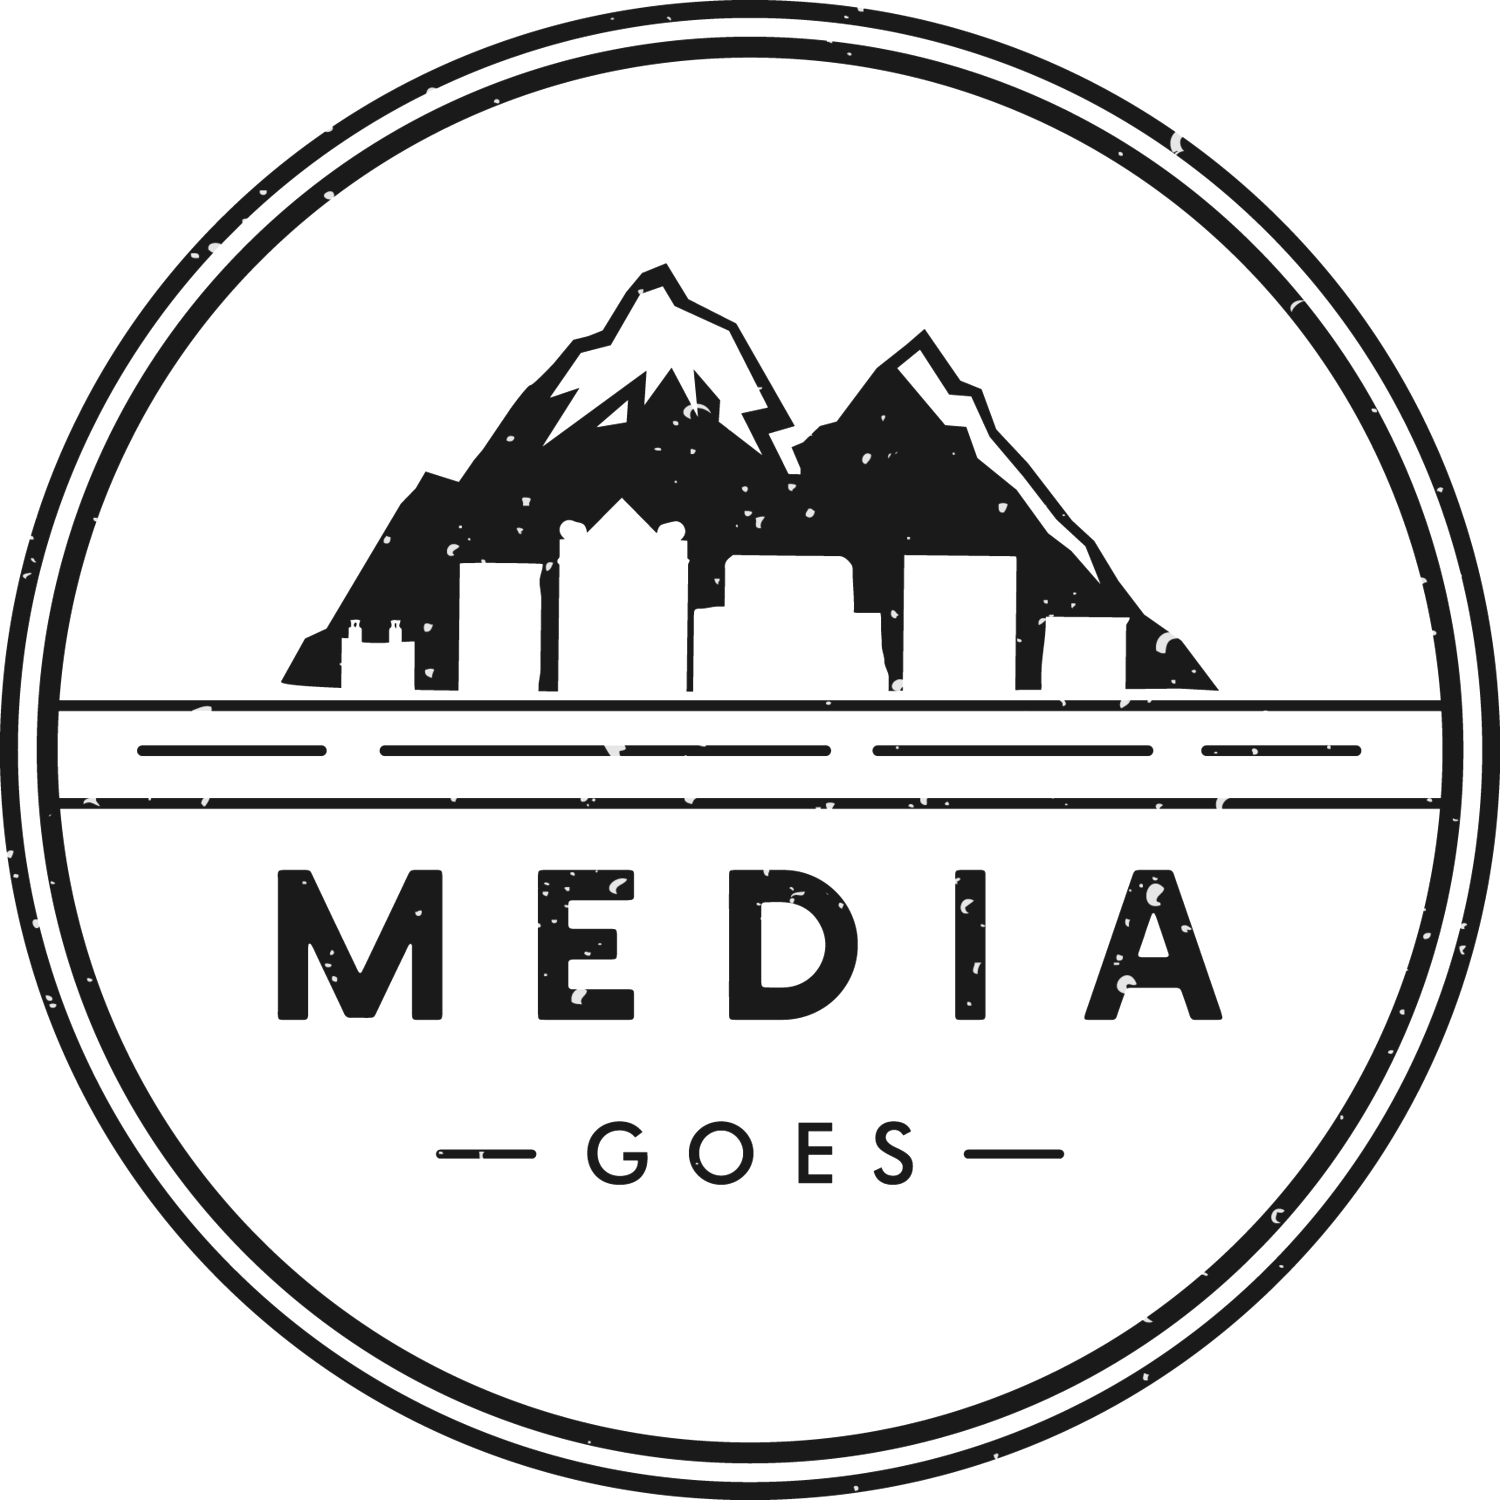 Media Goes - Adventure and Travel Media